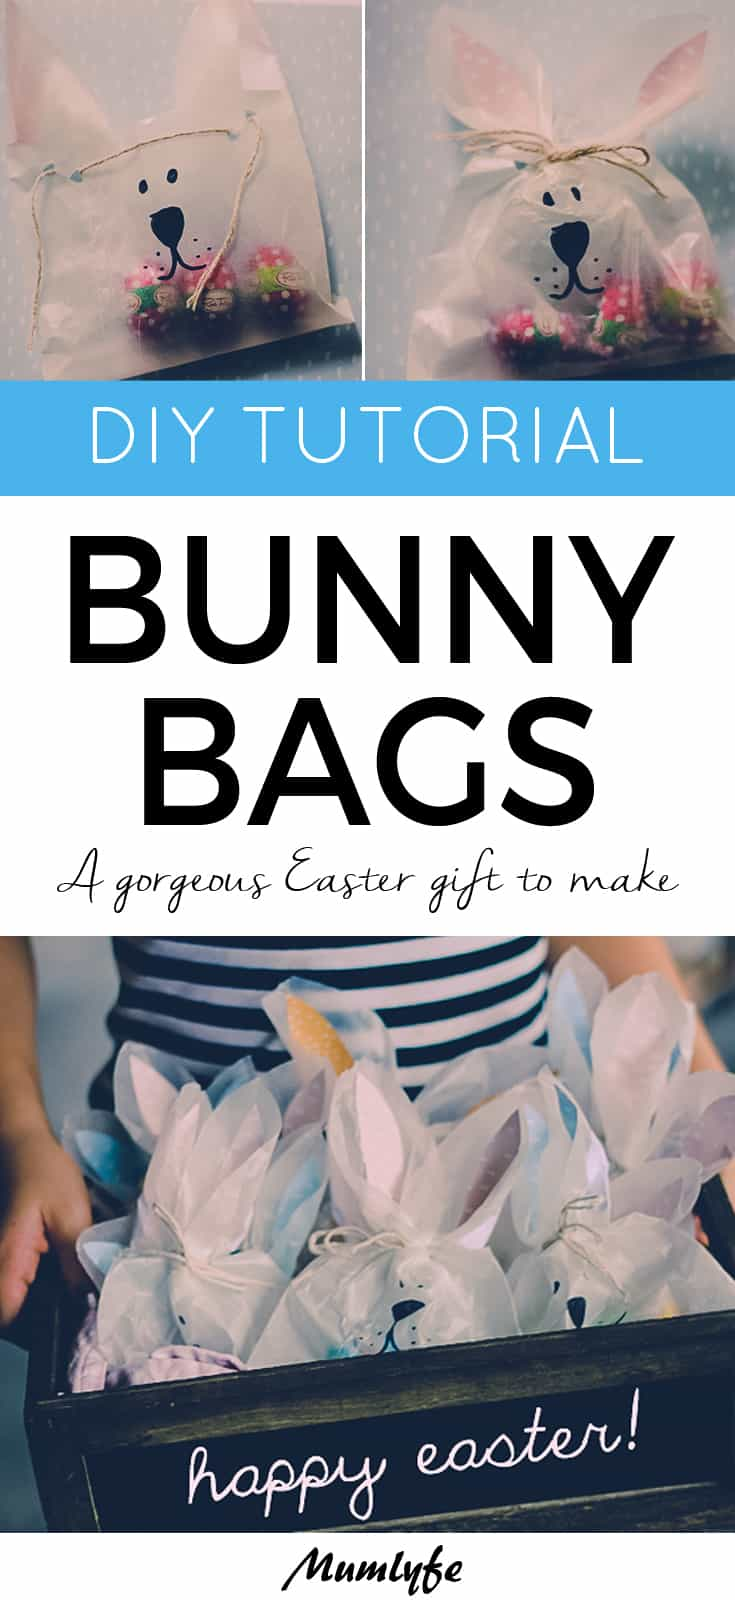 Bunny bags to make for Easter - a lovely gift for friends